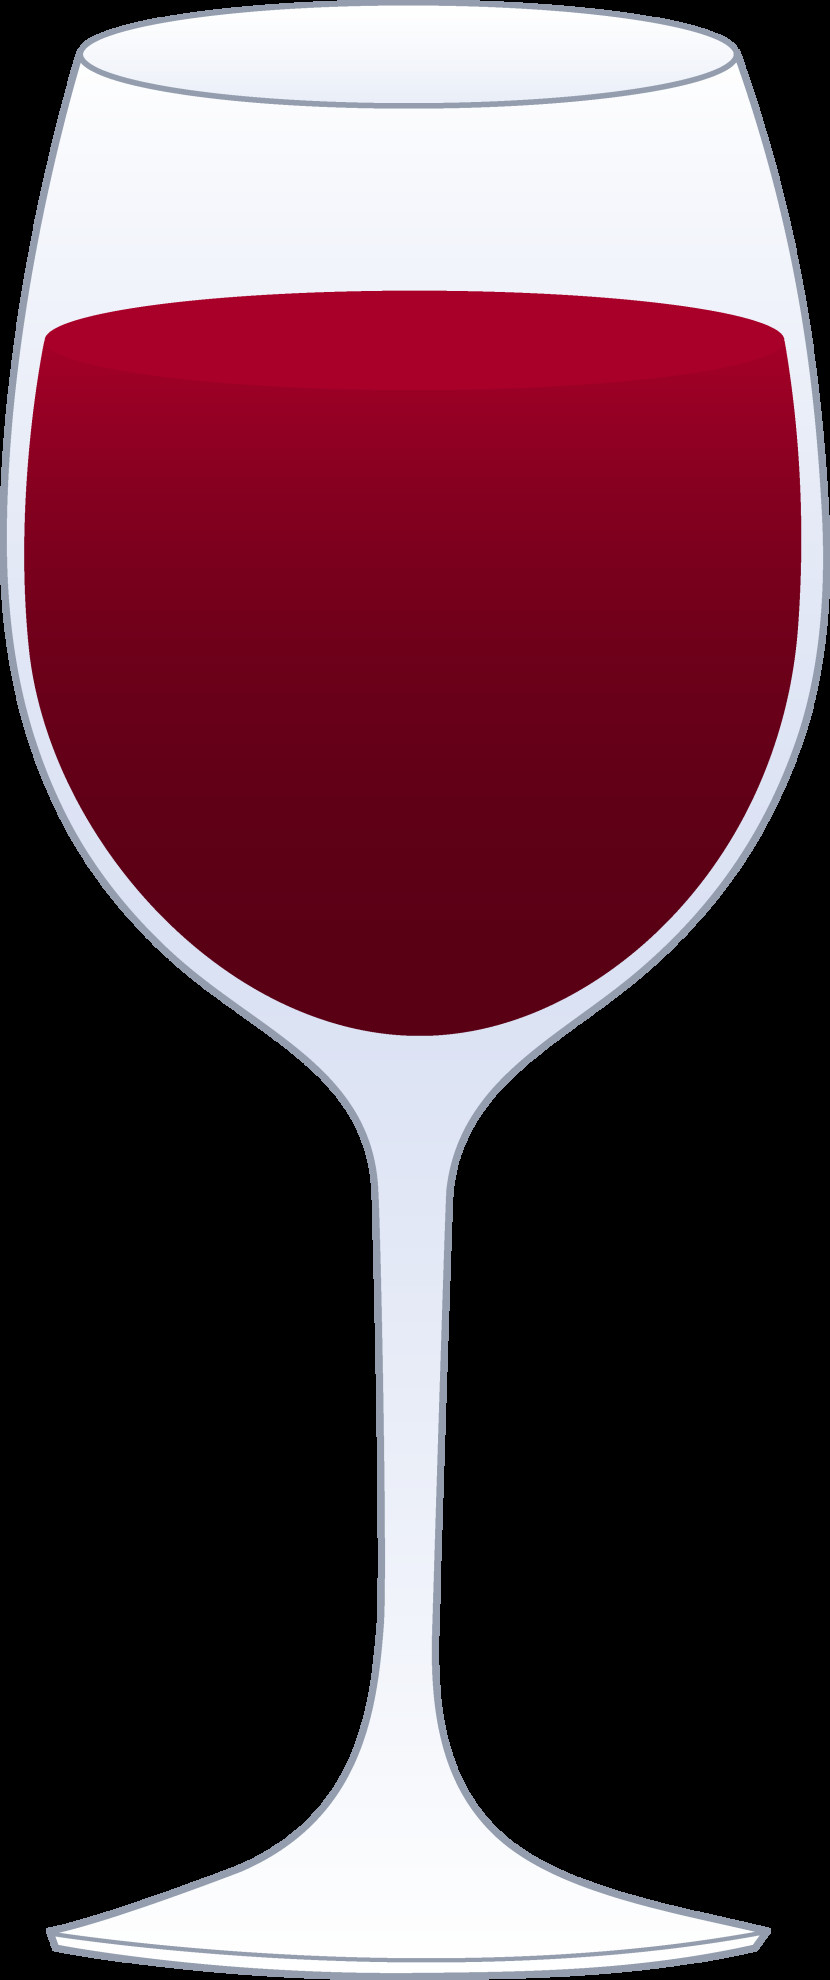 Wine Glass Clip Art Images